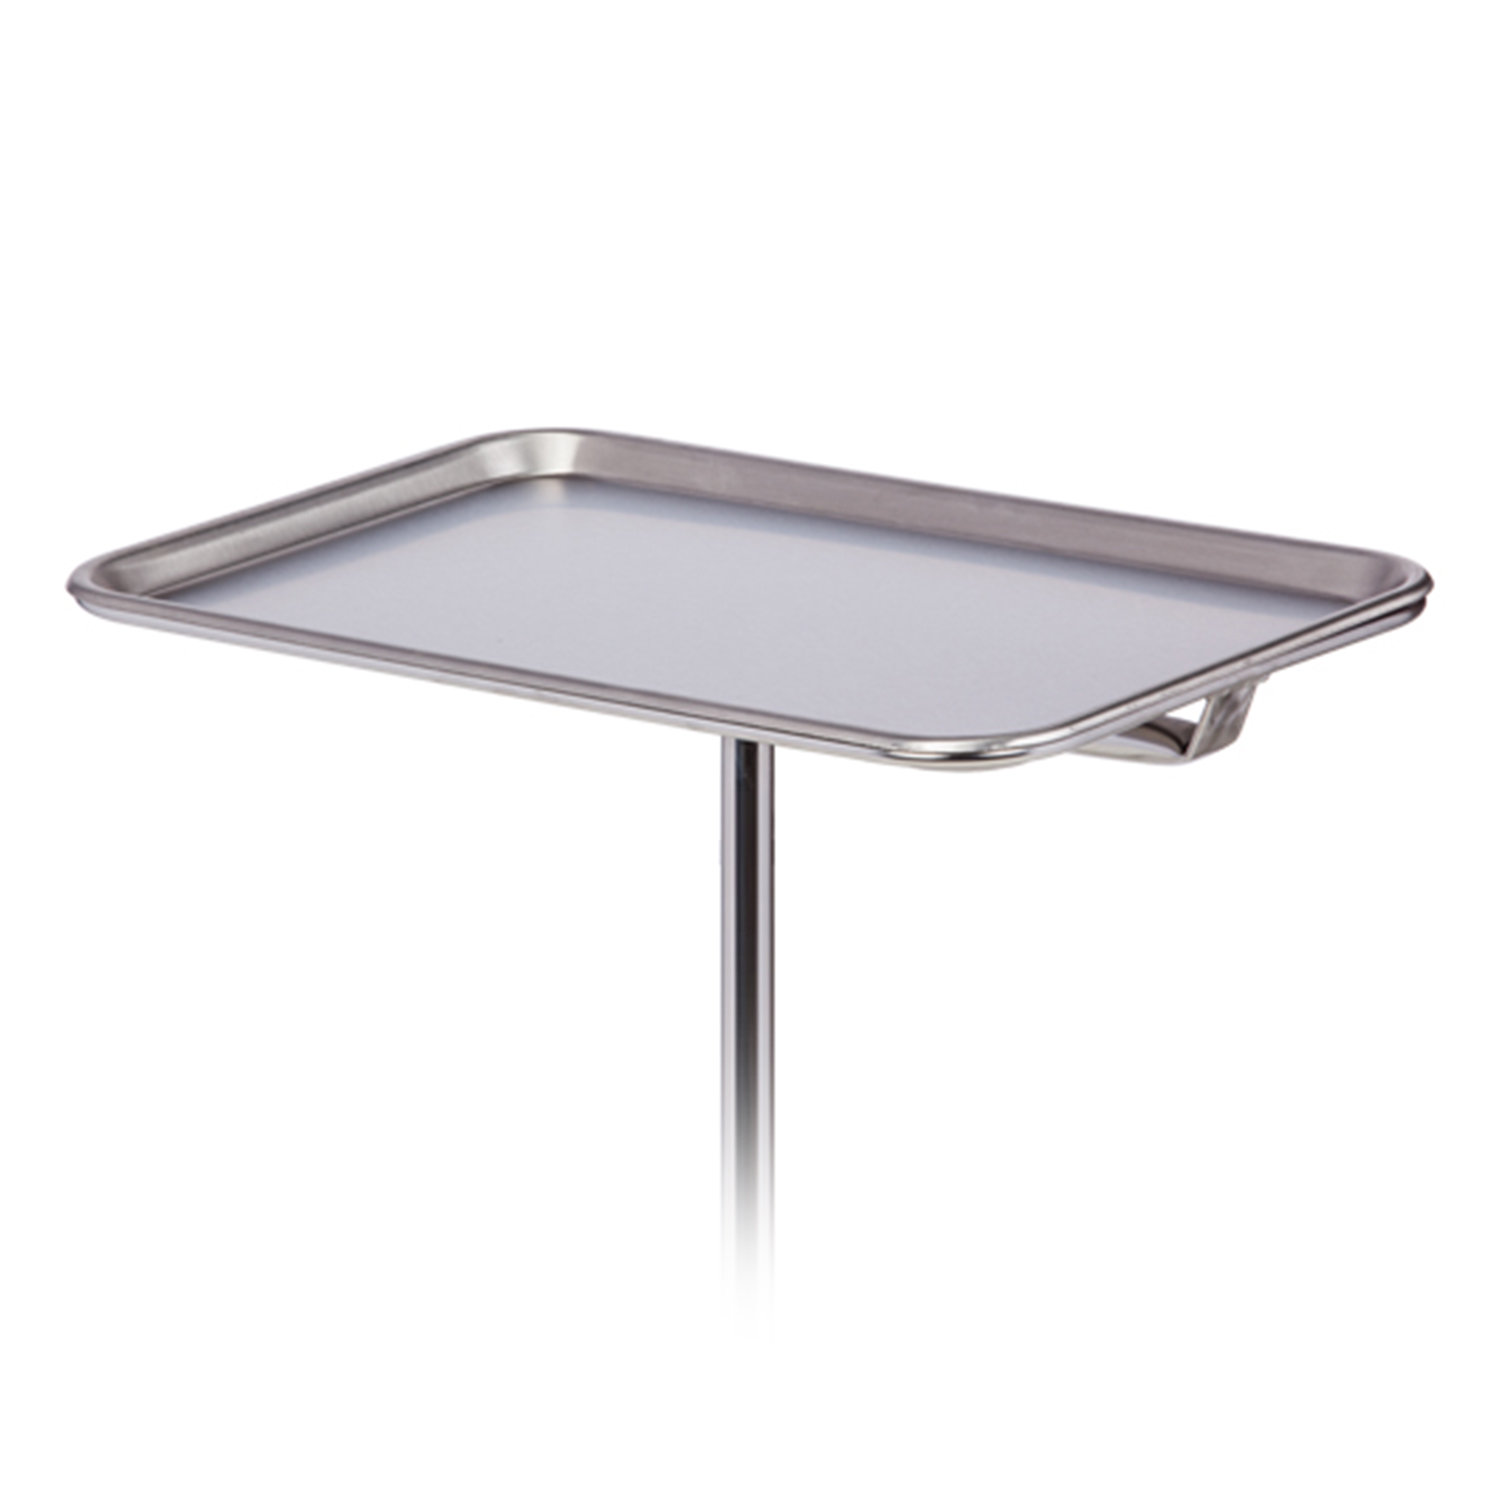 Stainless Steel Replacement Instrument Trays